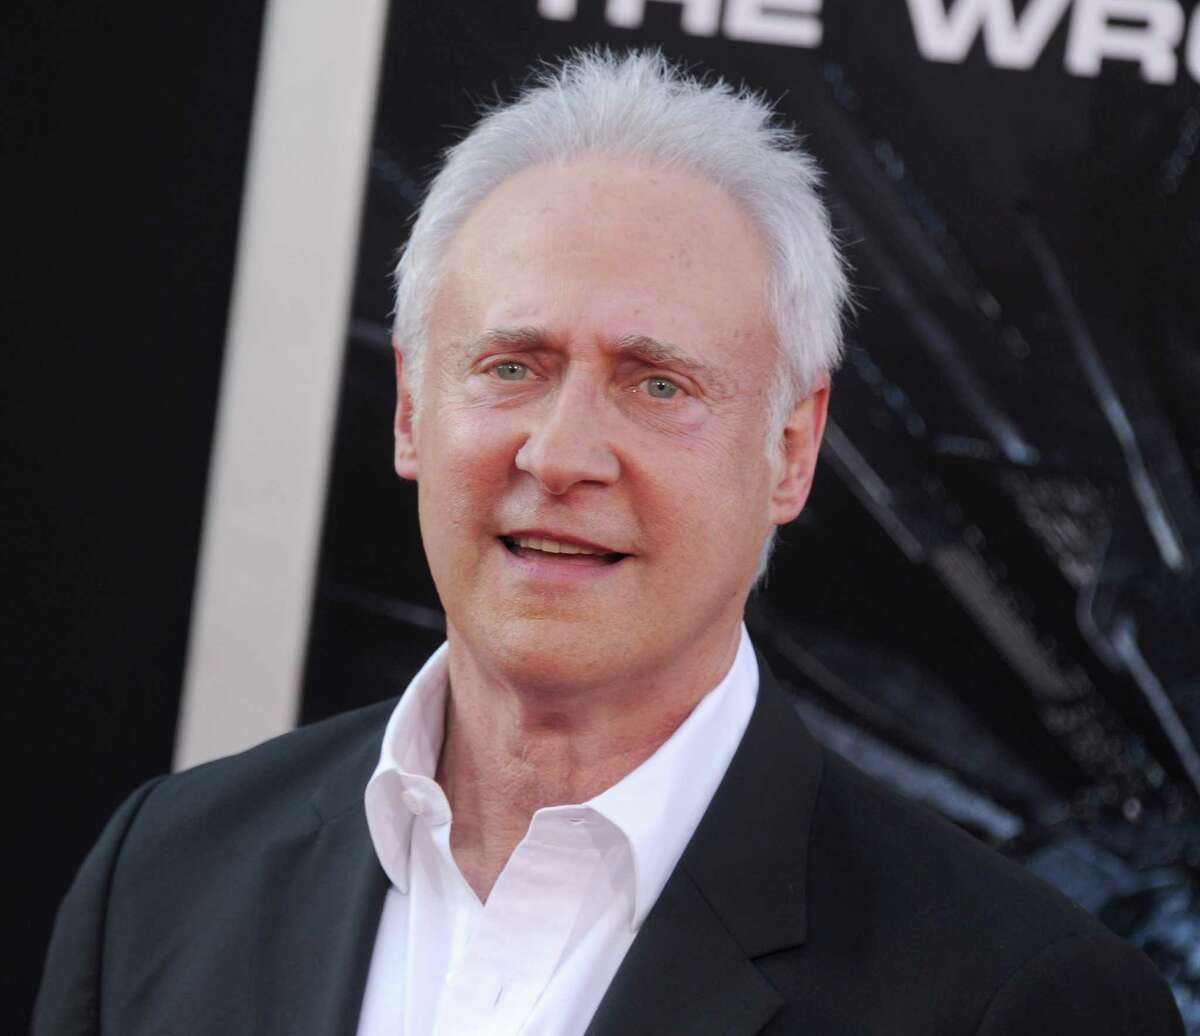 """HOLLYWOOD, CA - JUNE 20: Actor Brent Spiner arrives at the premiere of 20th Century Fox's """"Independence Day: Resurgence"""" at TCL Chinese Theatre on June 20, 2016 in Hollywood, California."""